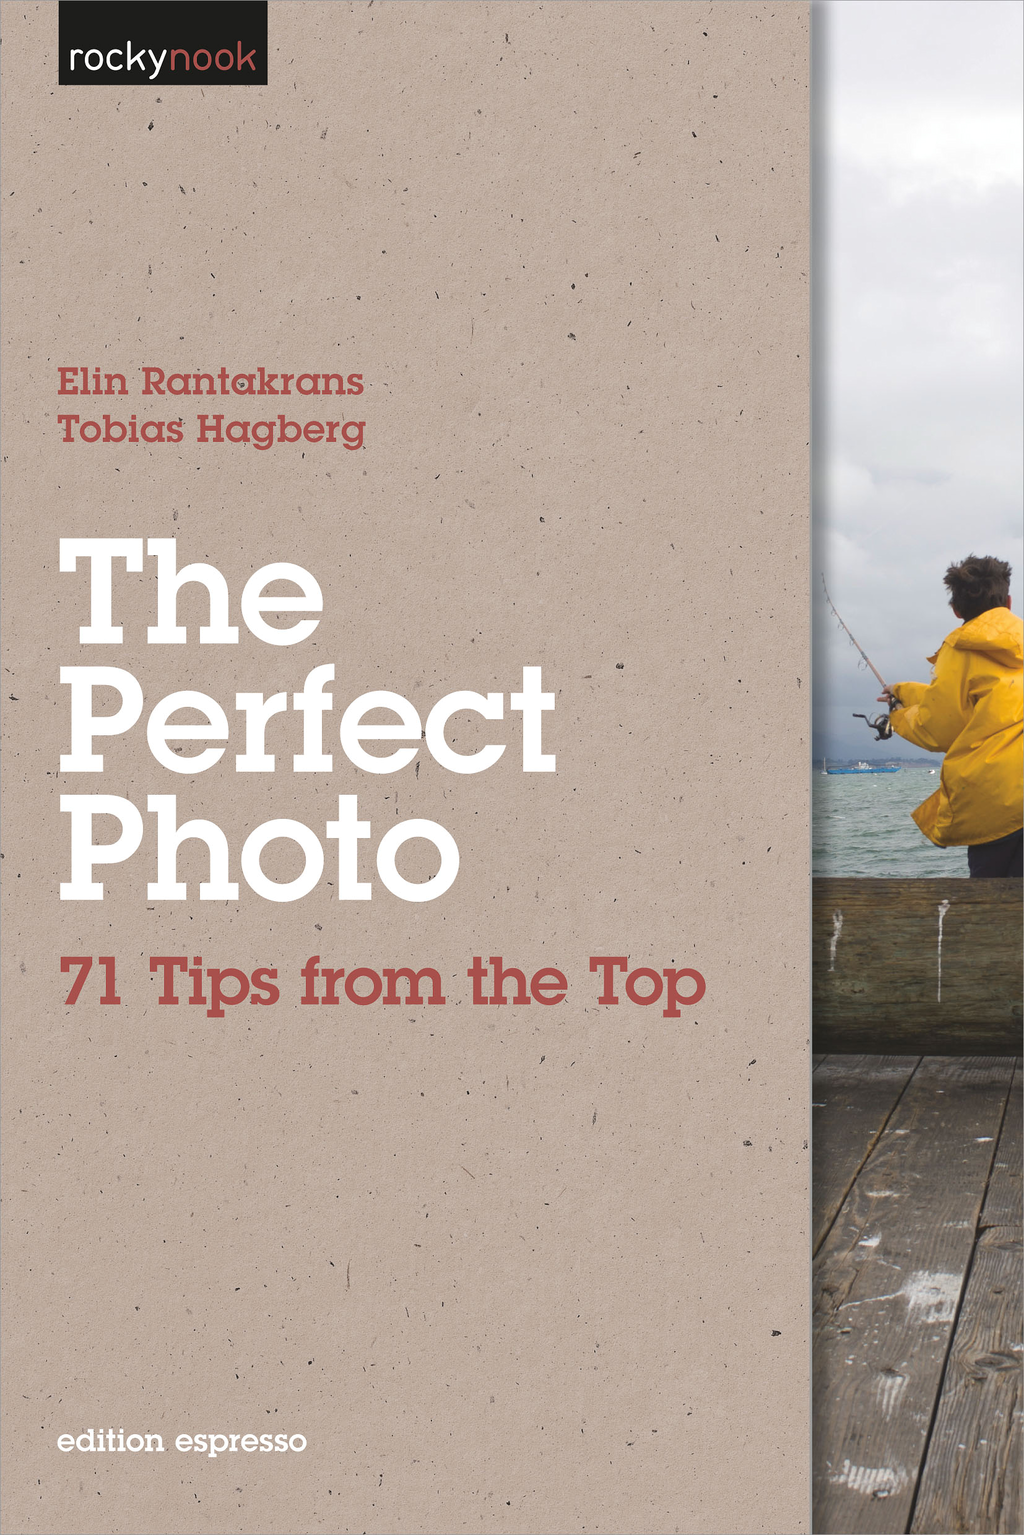 The Perfect Photo By: Elin Rantakrans,Tobias Hagberg